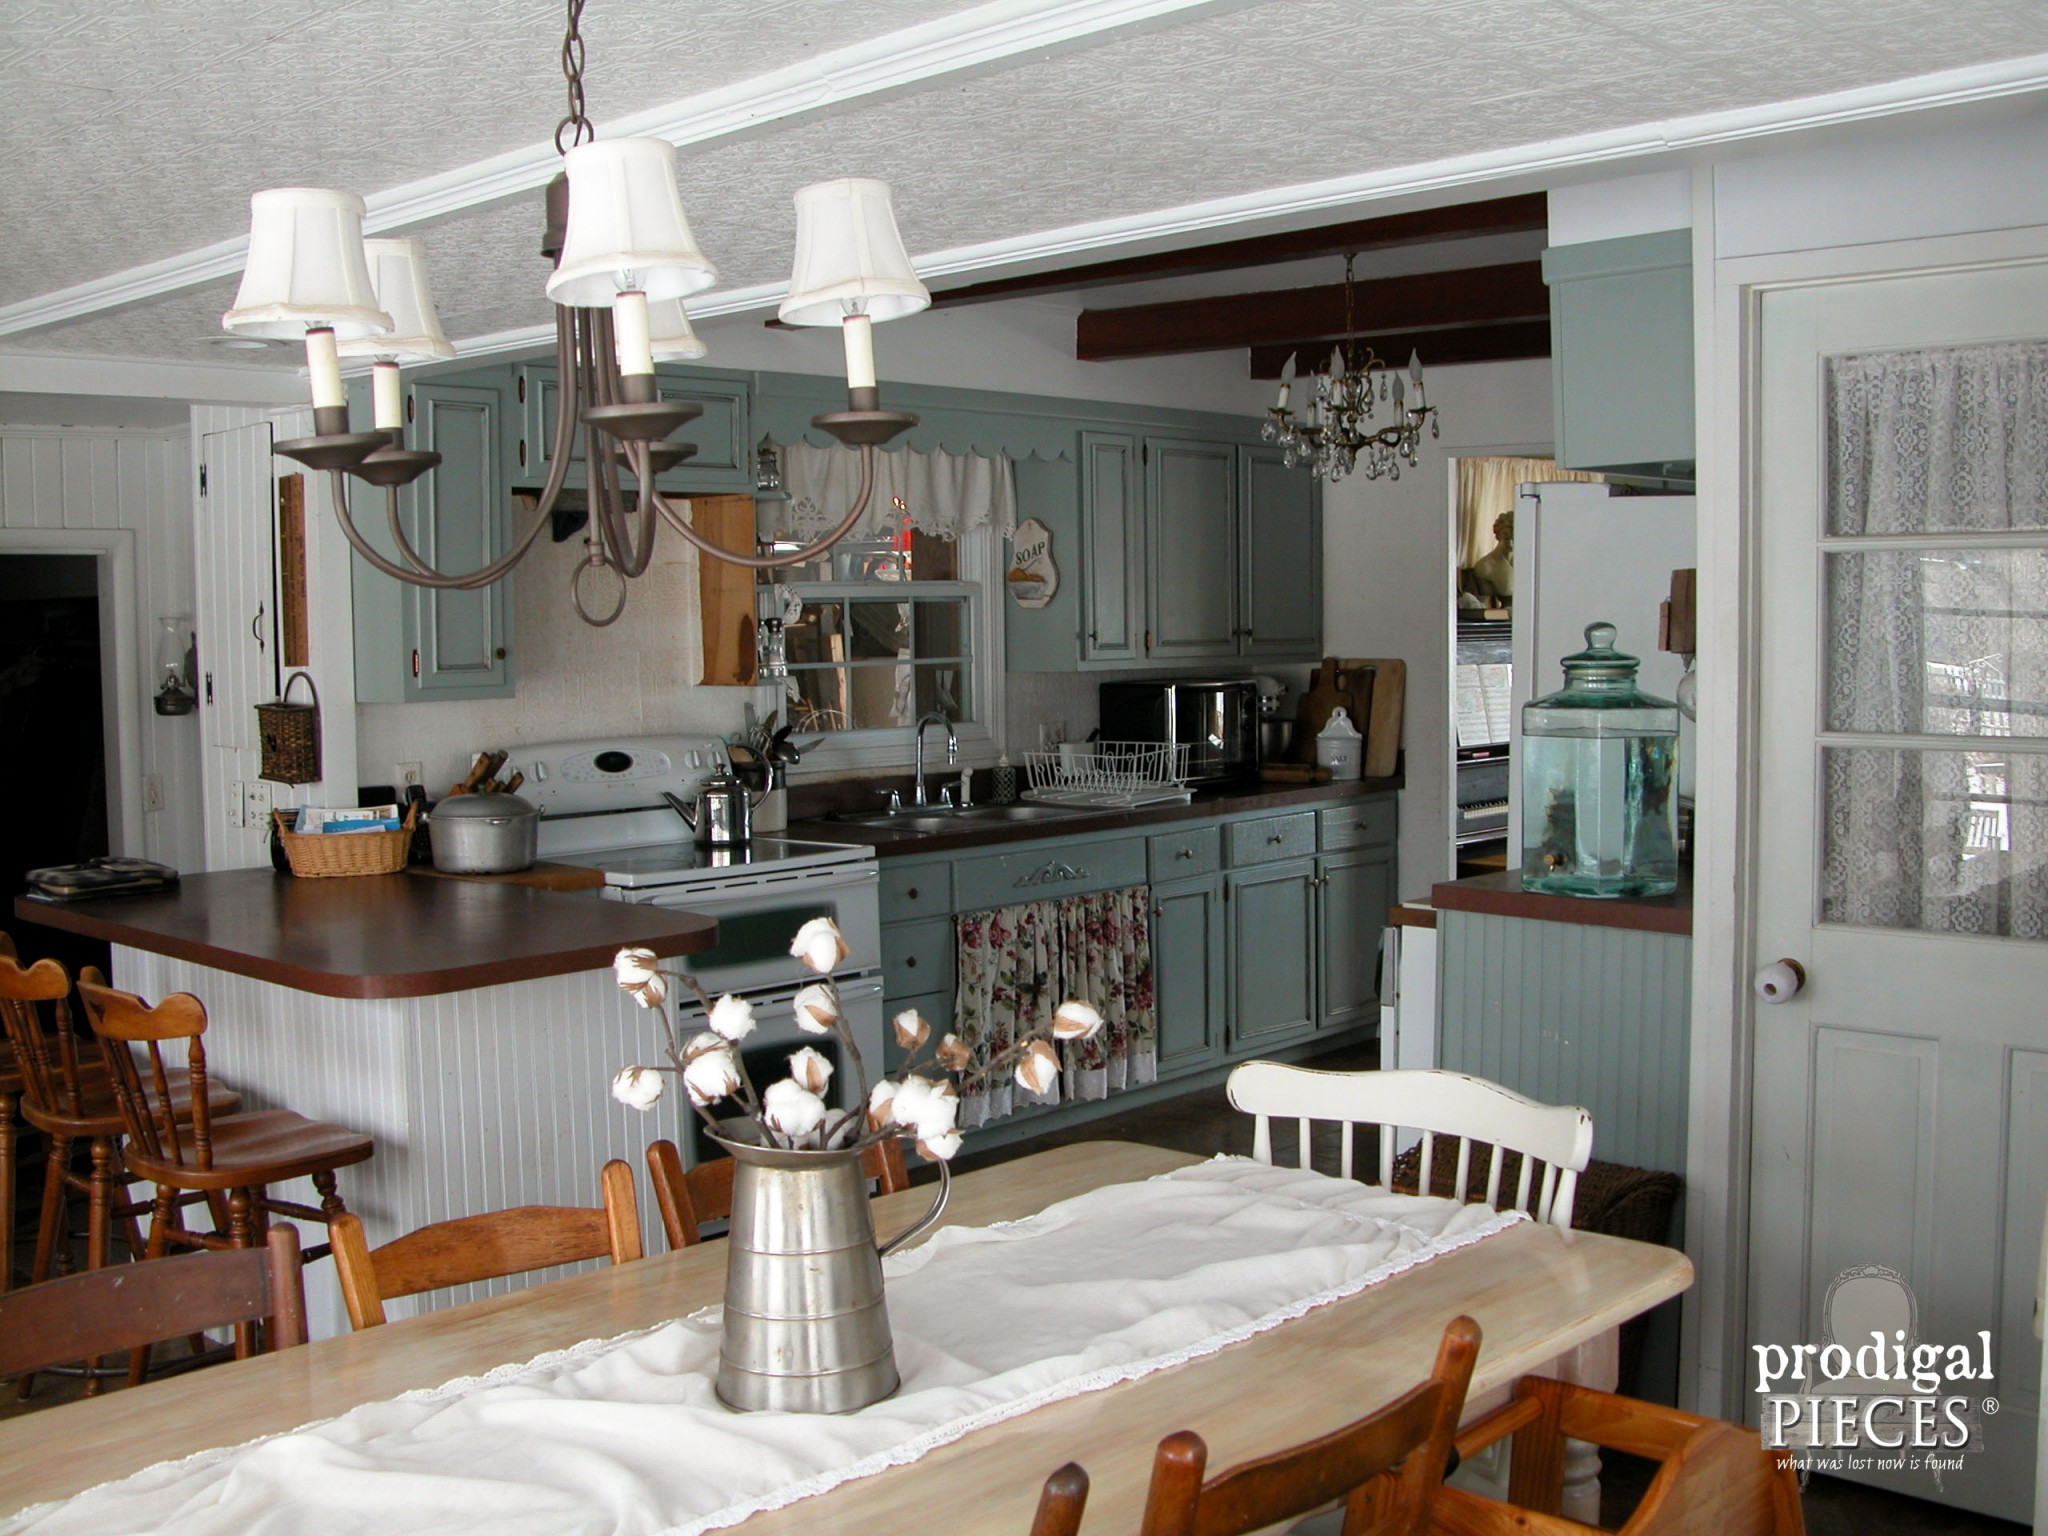 Kitchen Remodel Before by Prodigal Pieces | prodigalpieces.com